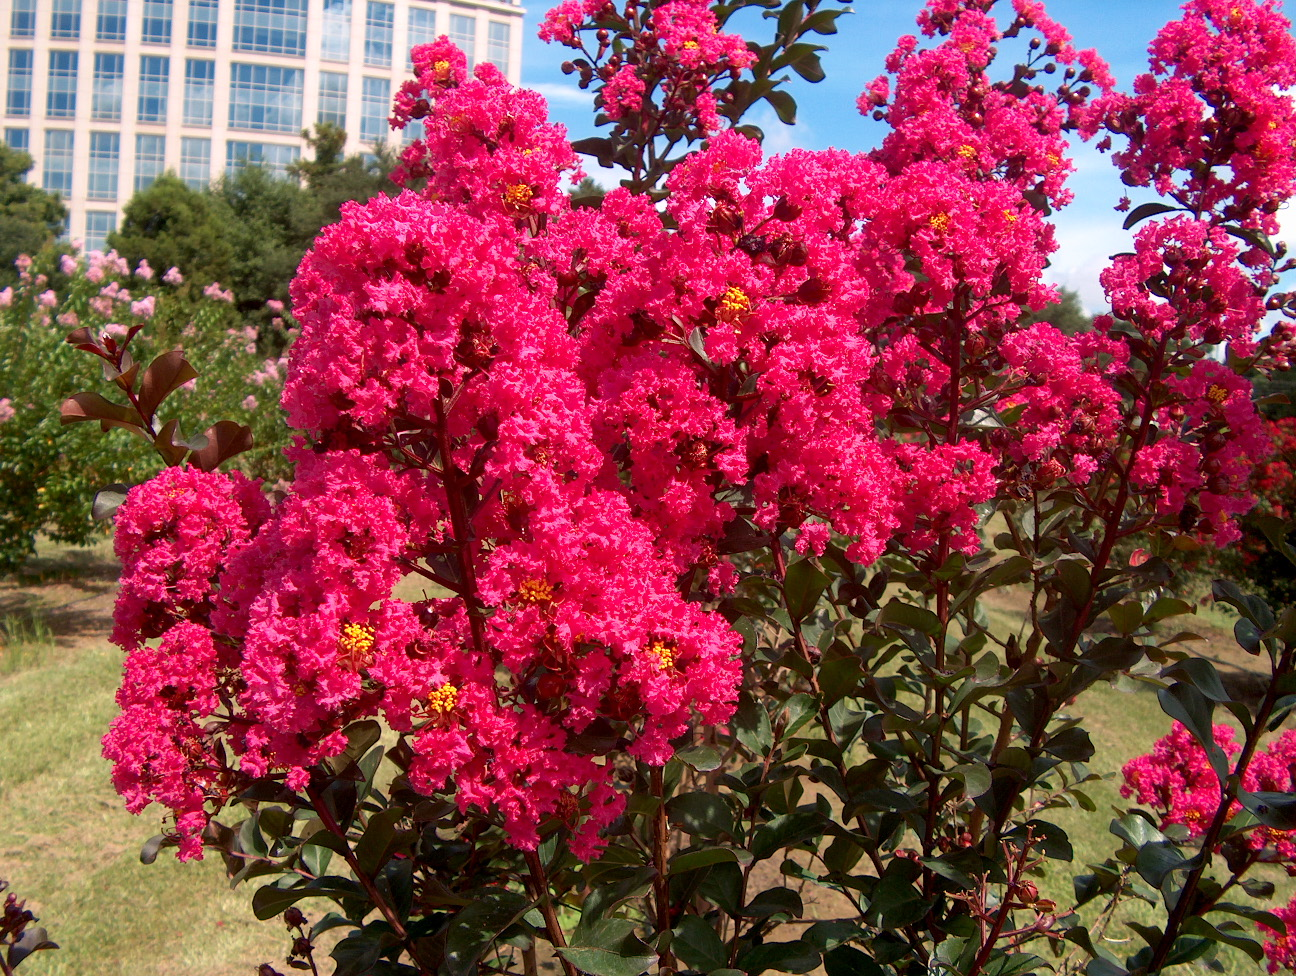 Lagerstroemia indica 'Pink Velour' / Lagerstroemia indica 'Pink Velour'